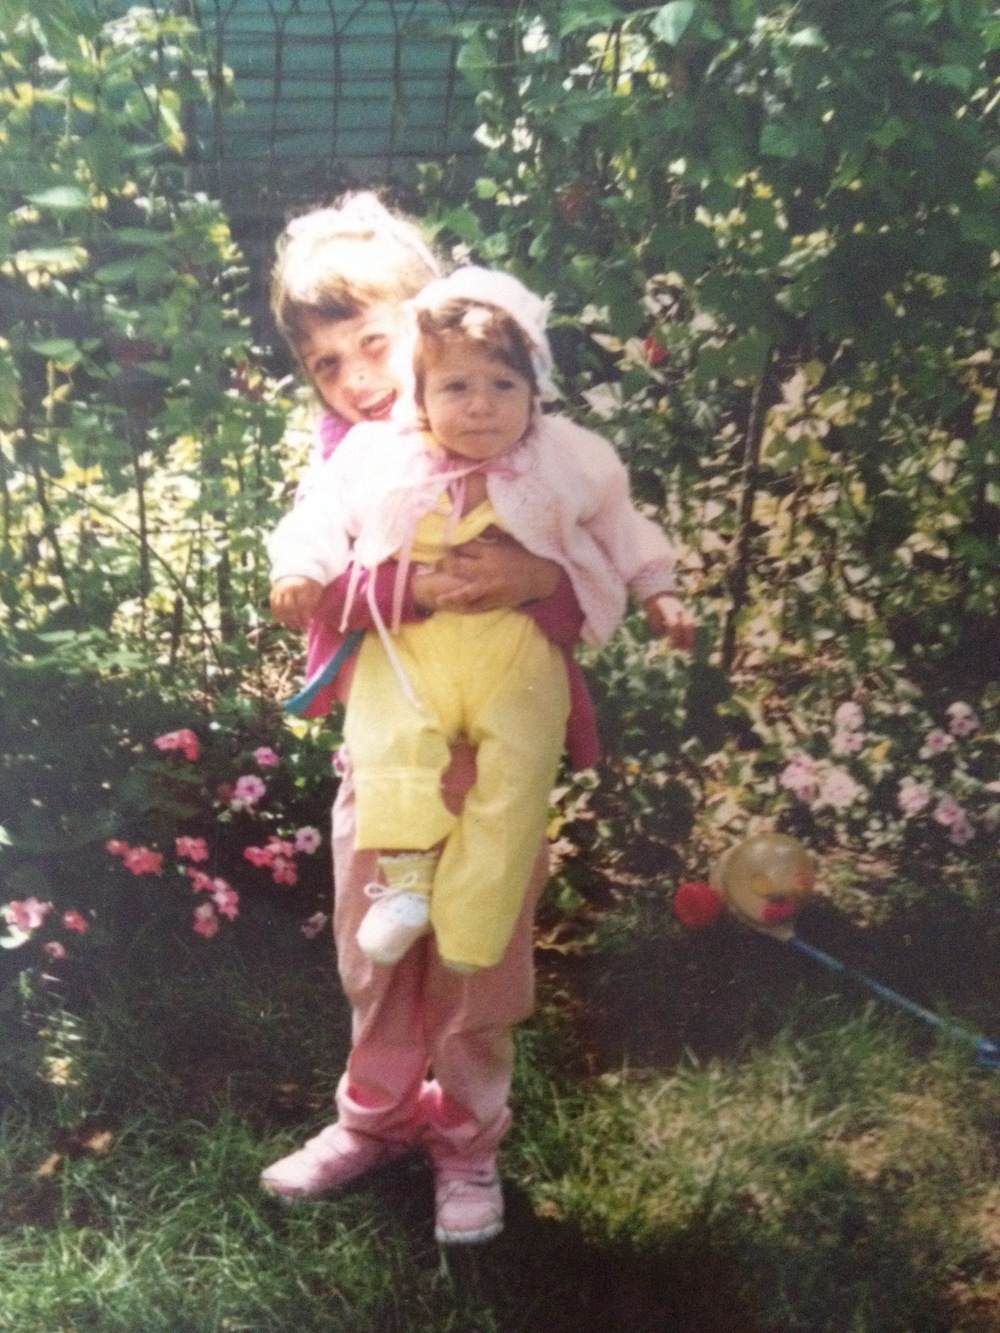 Is this the proper way to hold a baby? Also, I don't know why this photo is squished. Internet, please help! One more also -- this is me and my sister.